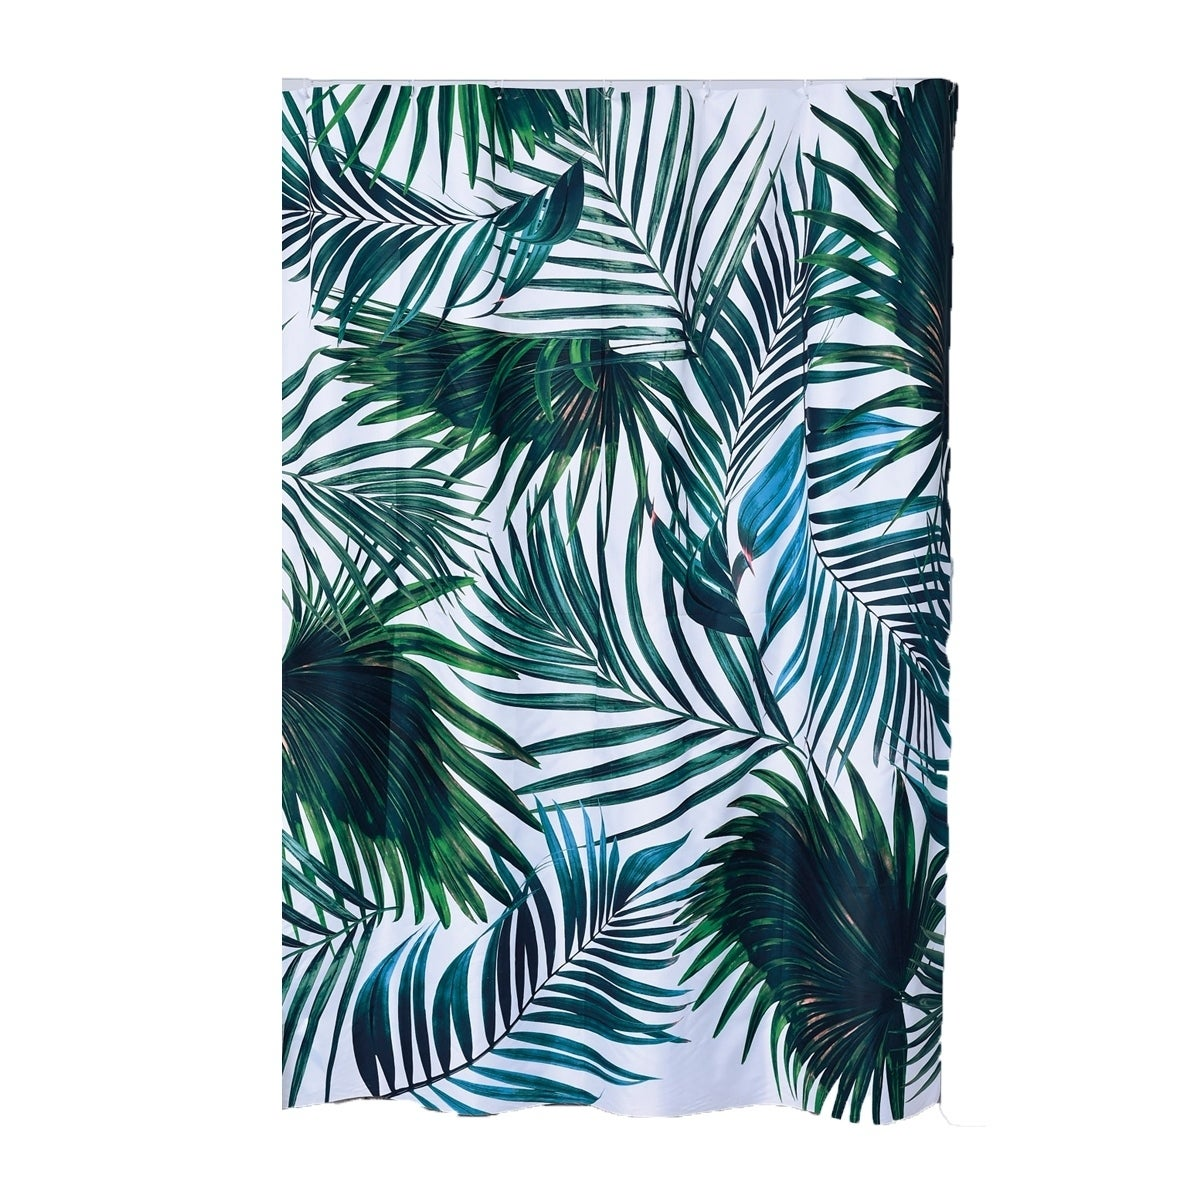 Tropical Printed Polyester Fabric Shower Curtain 71 W X 79 H